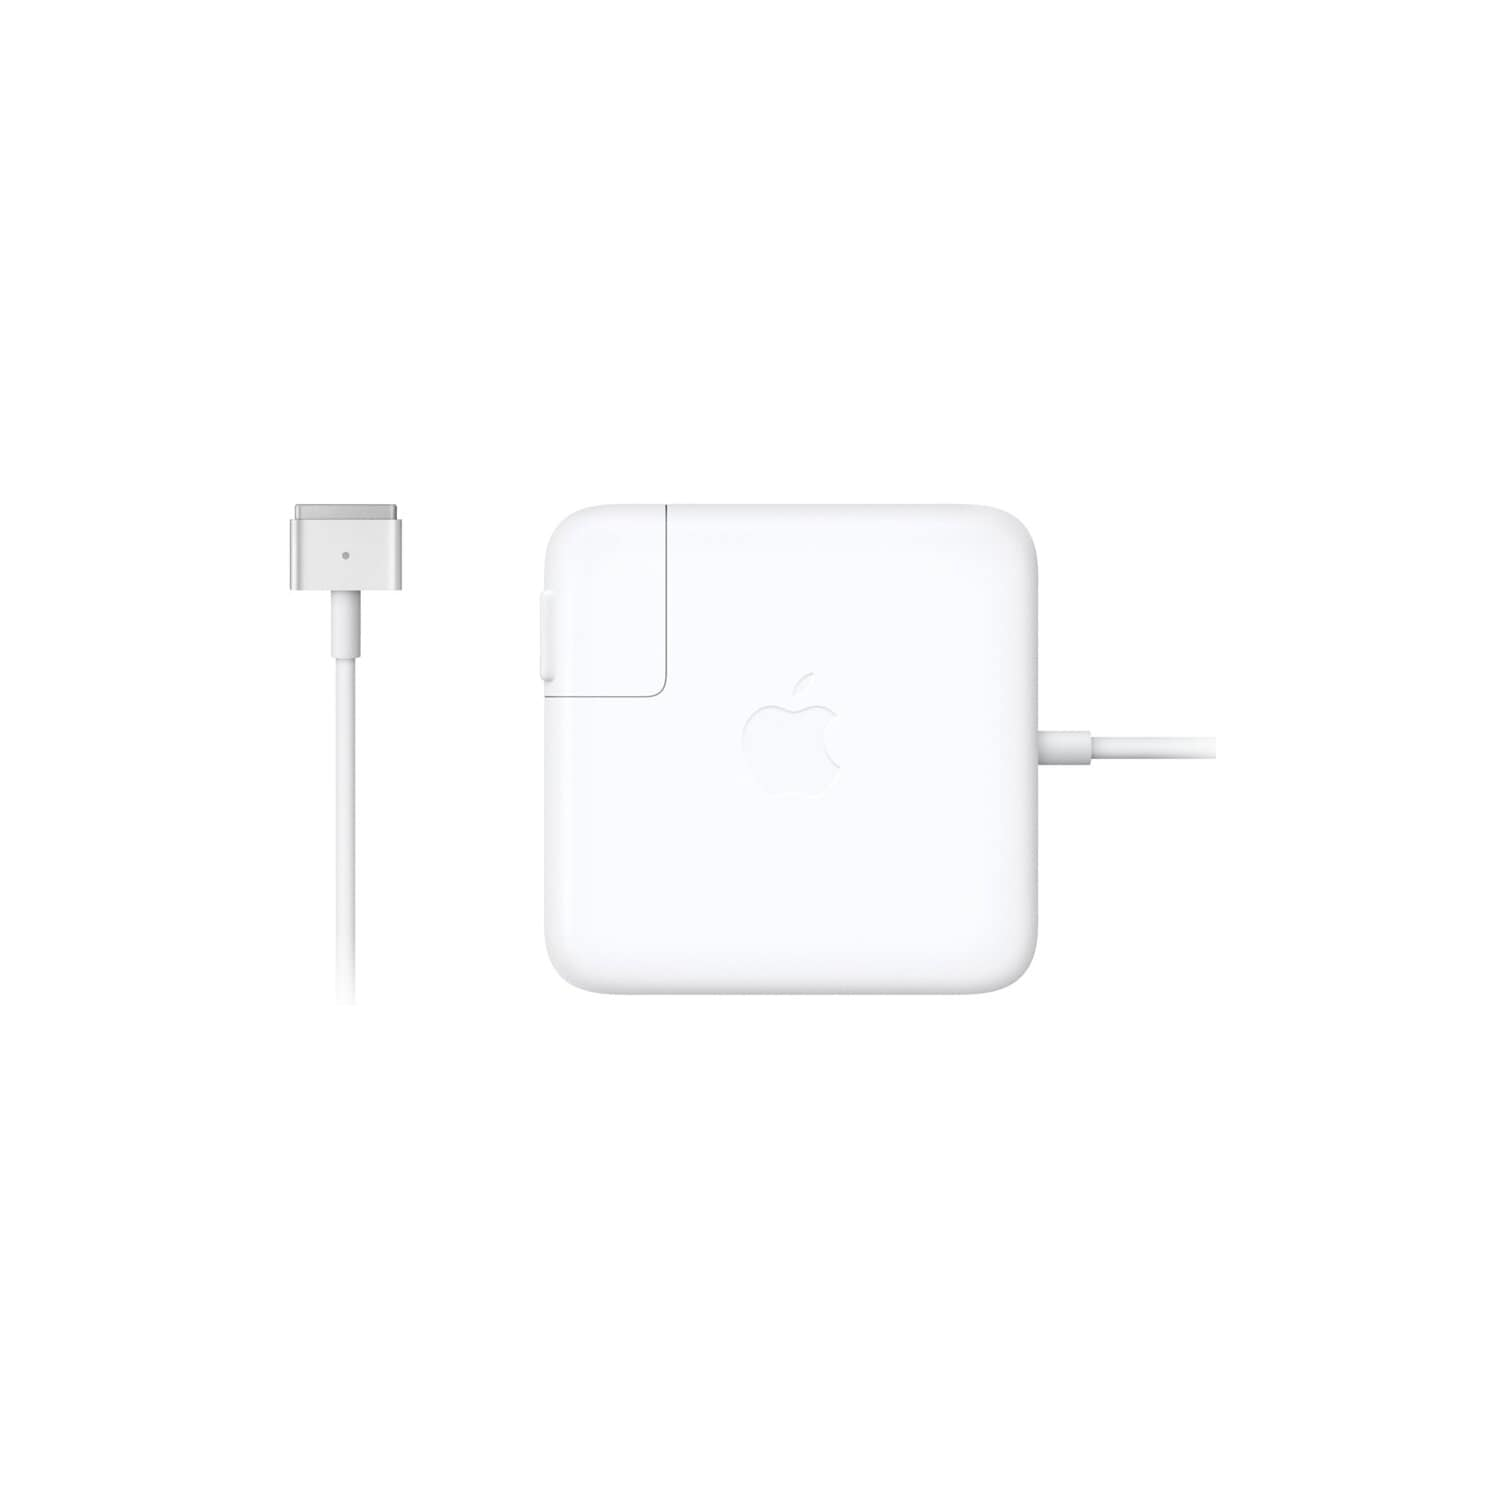 Zasilacz APPLE MagSafe 2 60 W do MacBook Pro Retina MD565Z/A